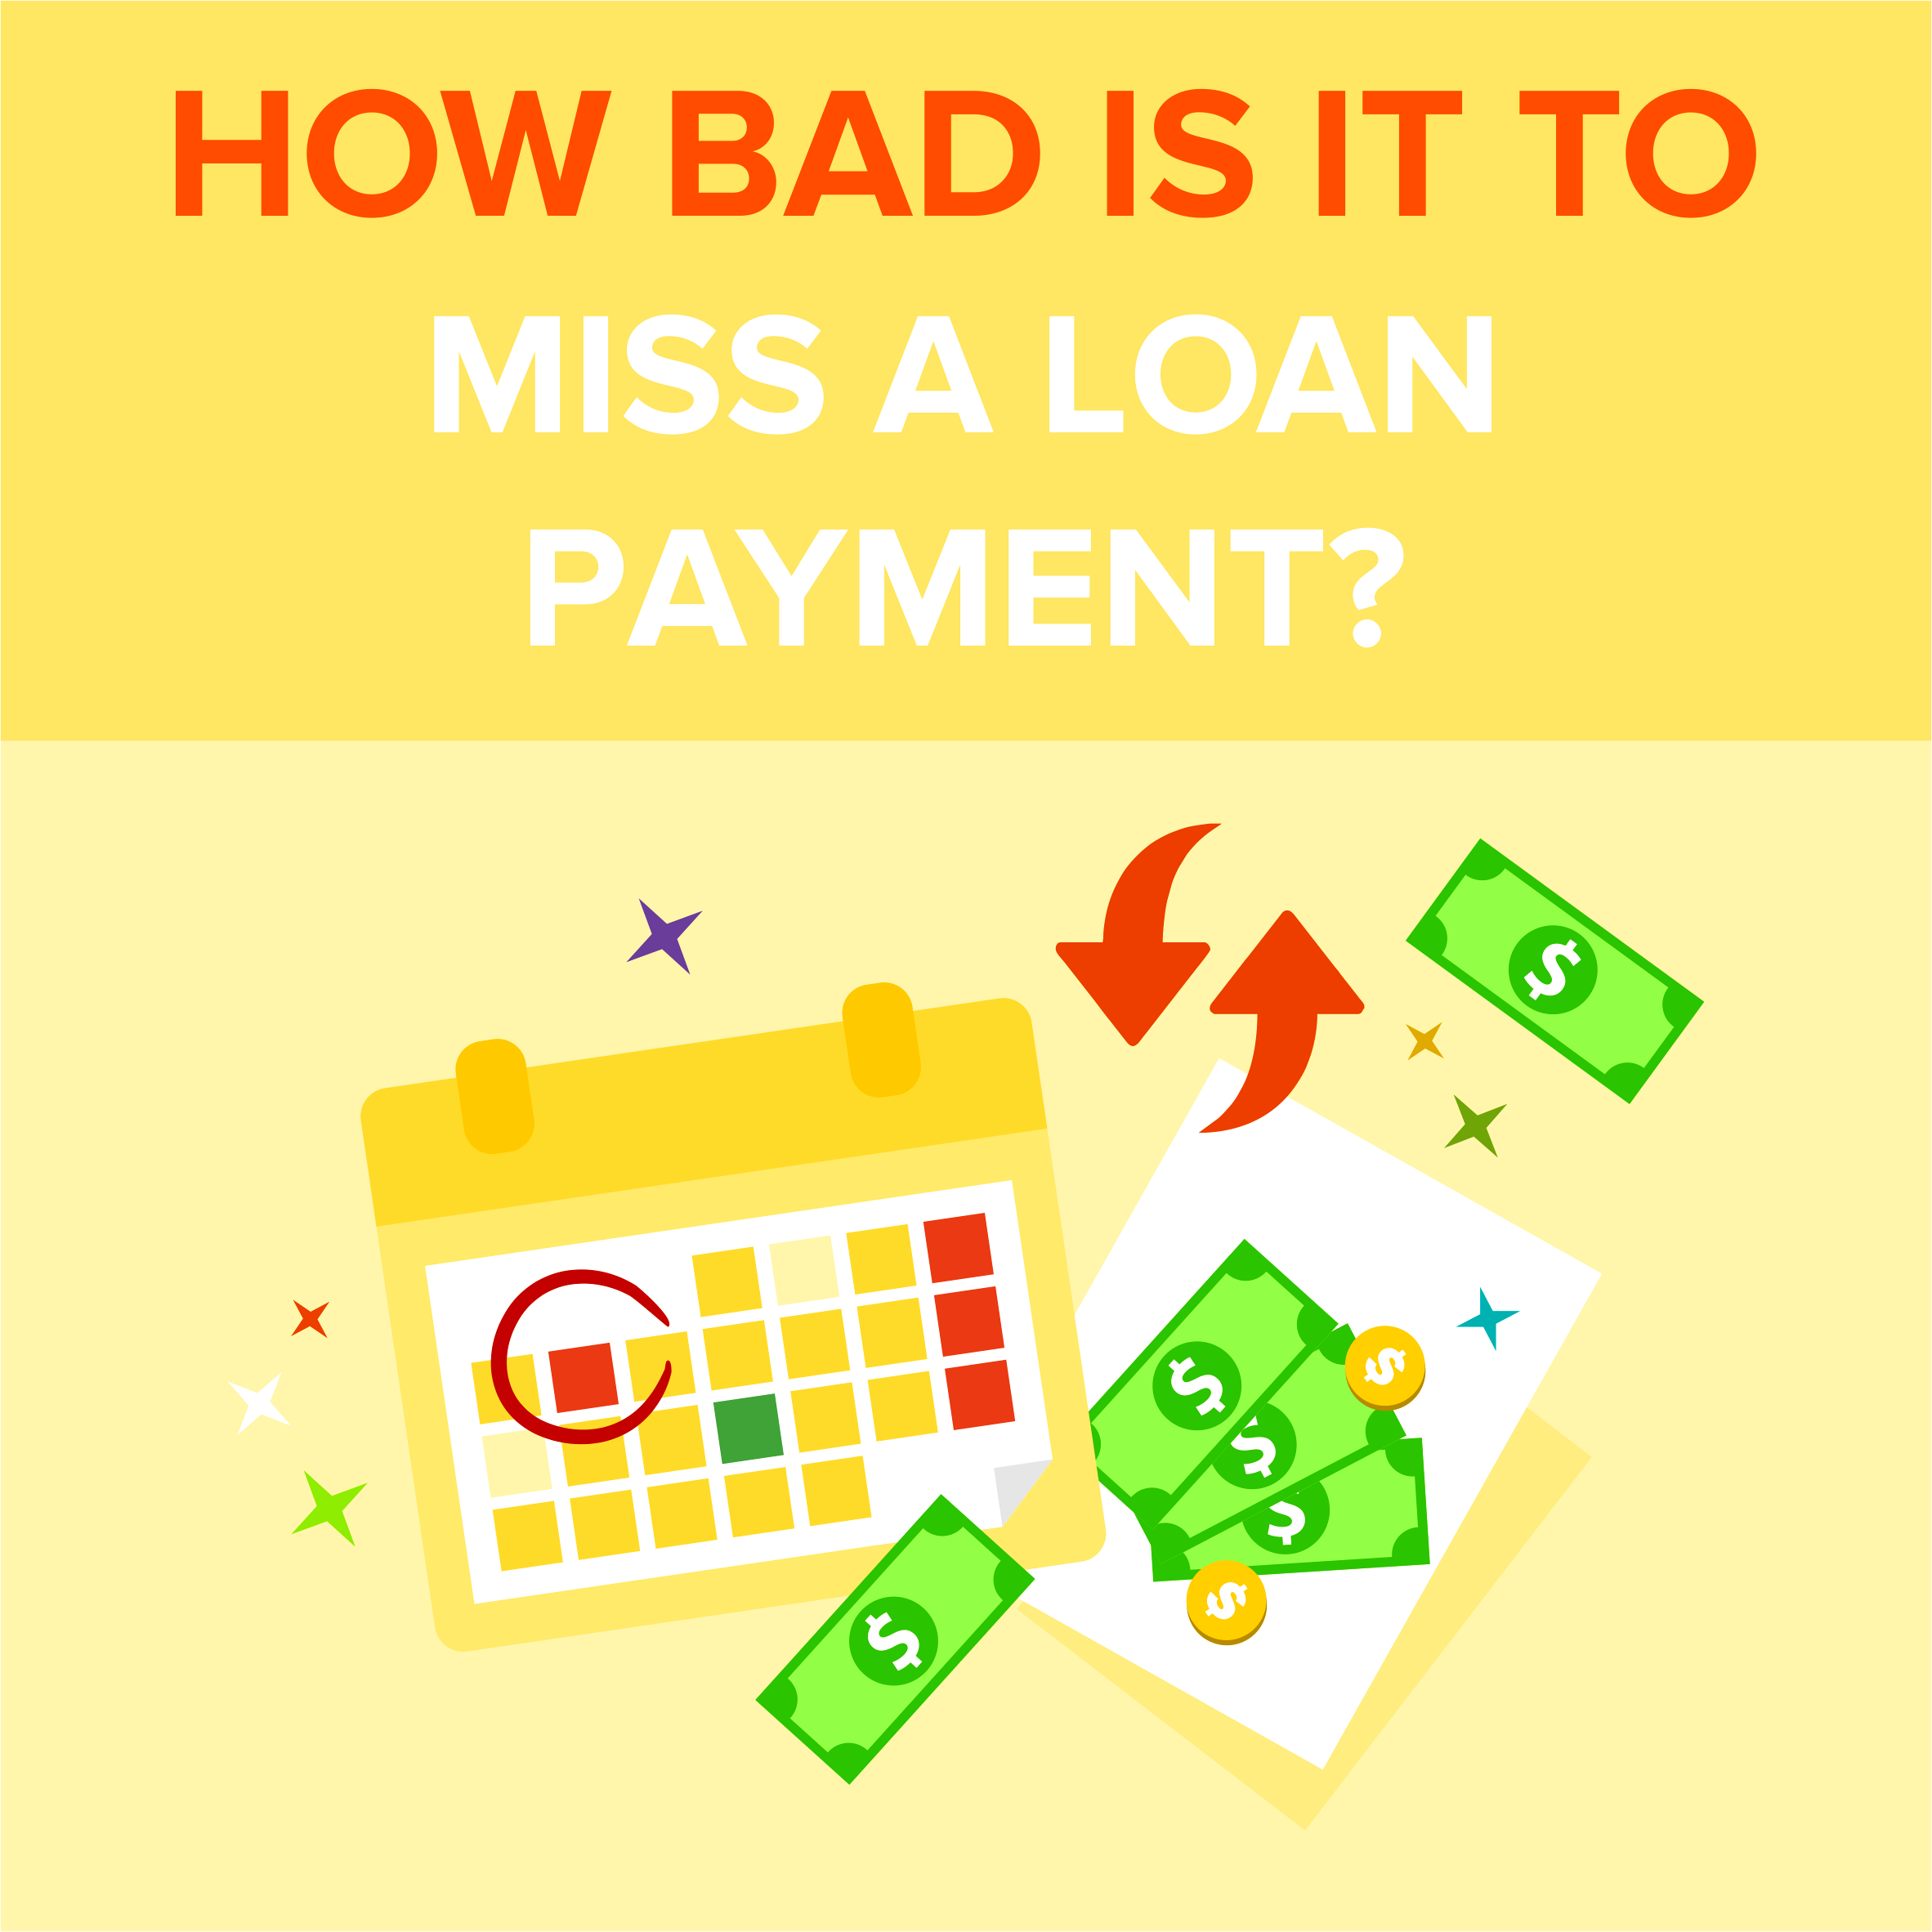 How Bad is it to Miss a Loan Payment?